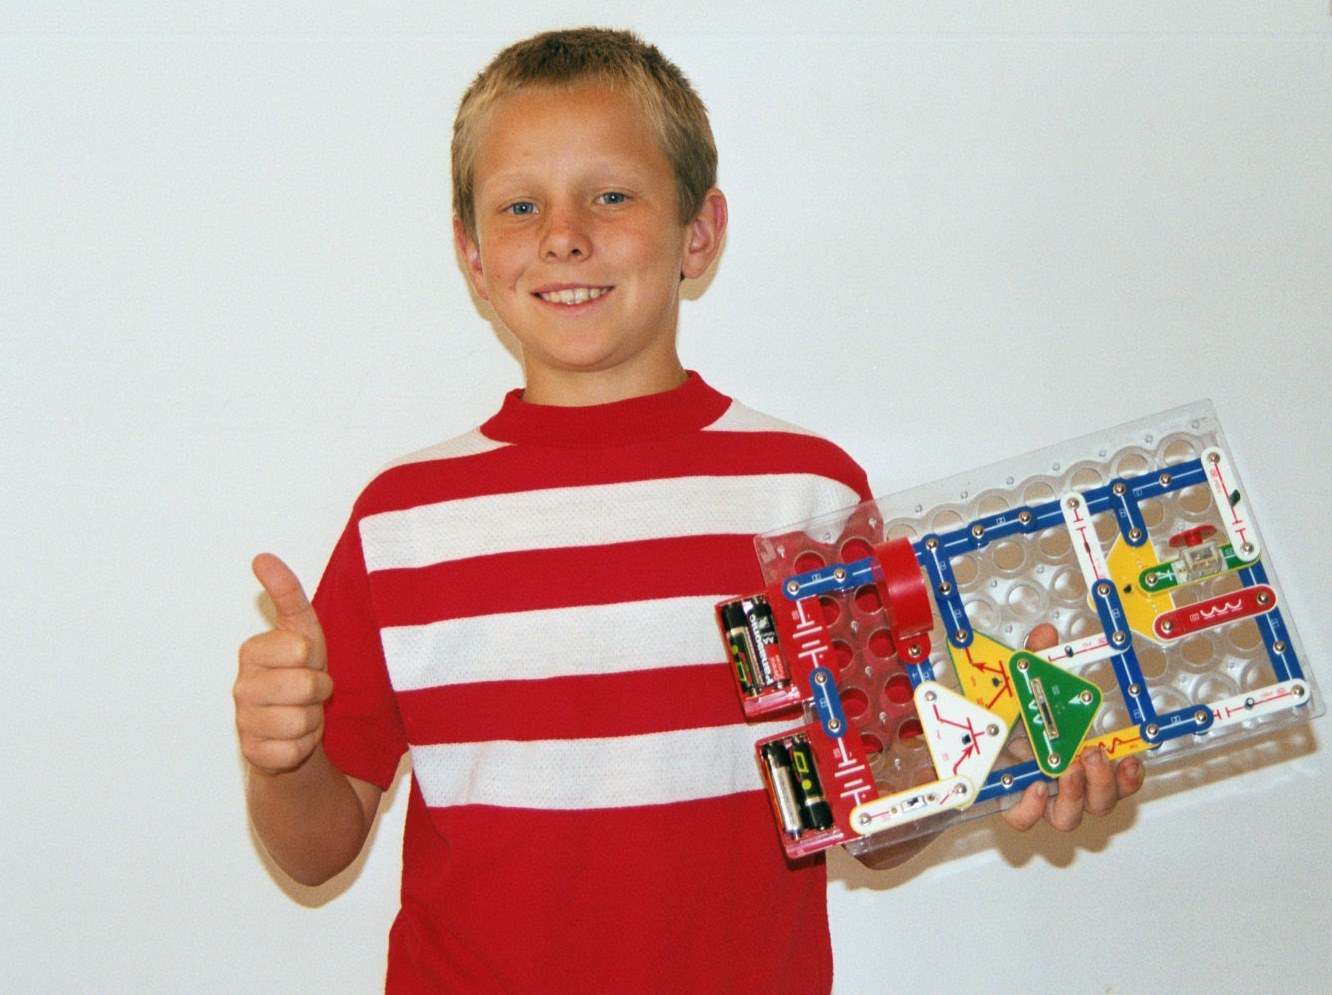 Kid Inventor Creative Electronics Kit, Advanced 320 ...